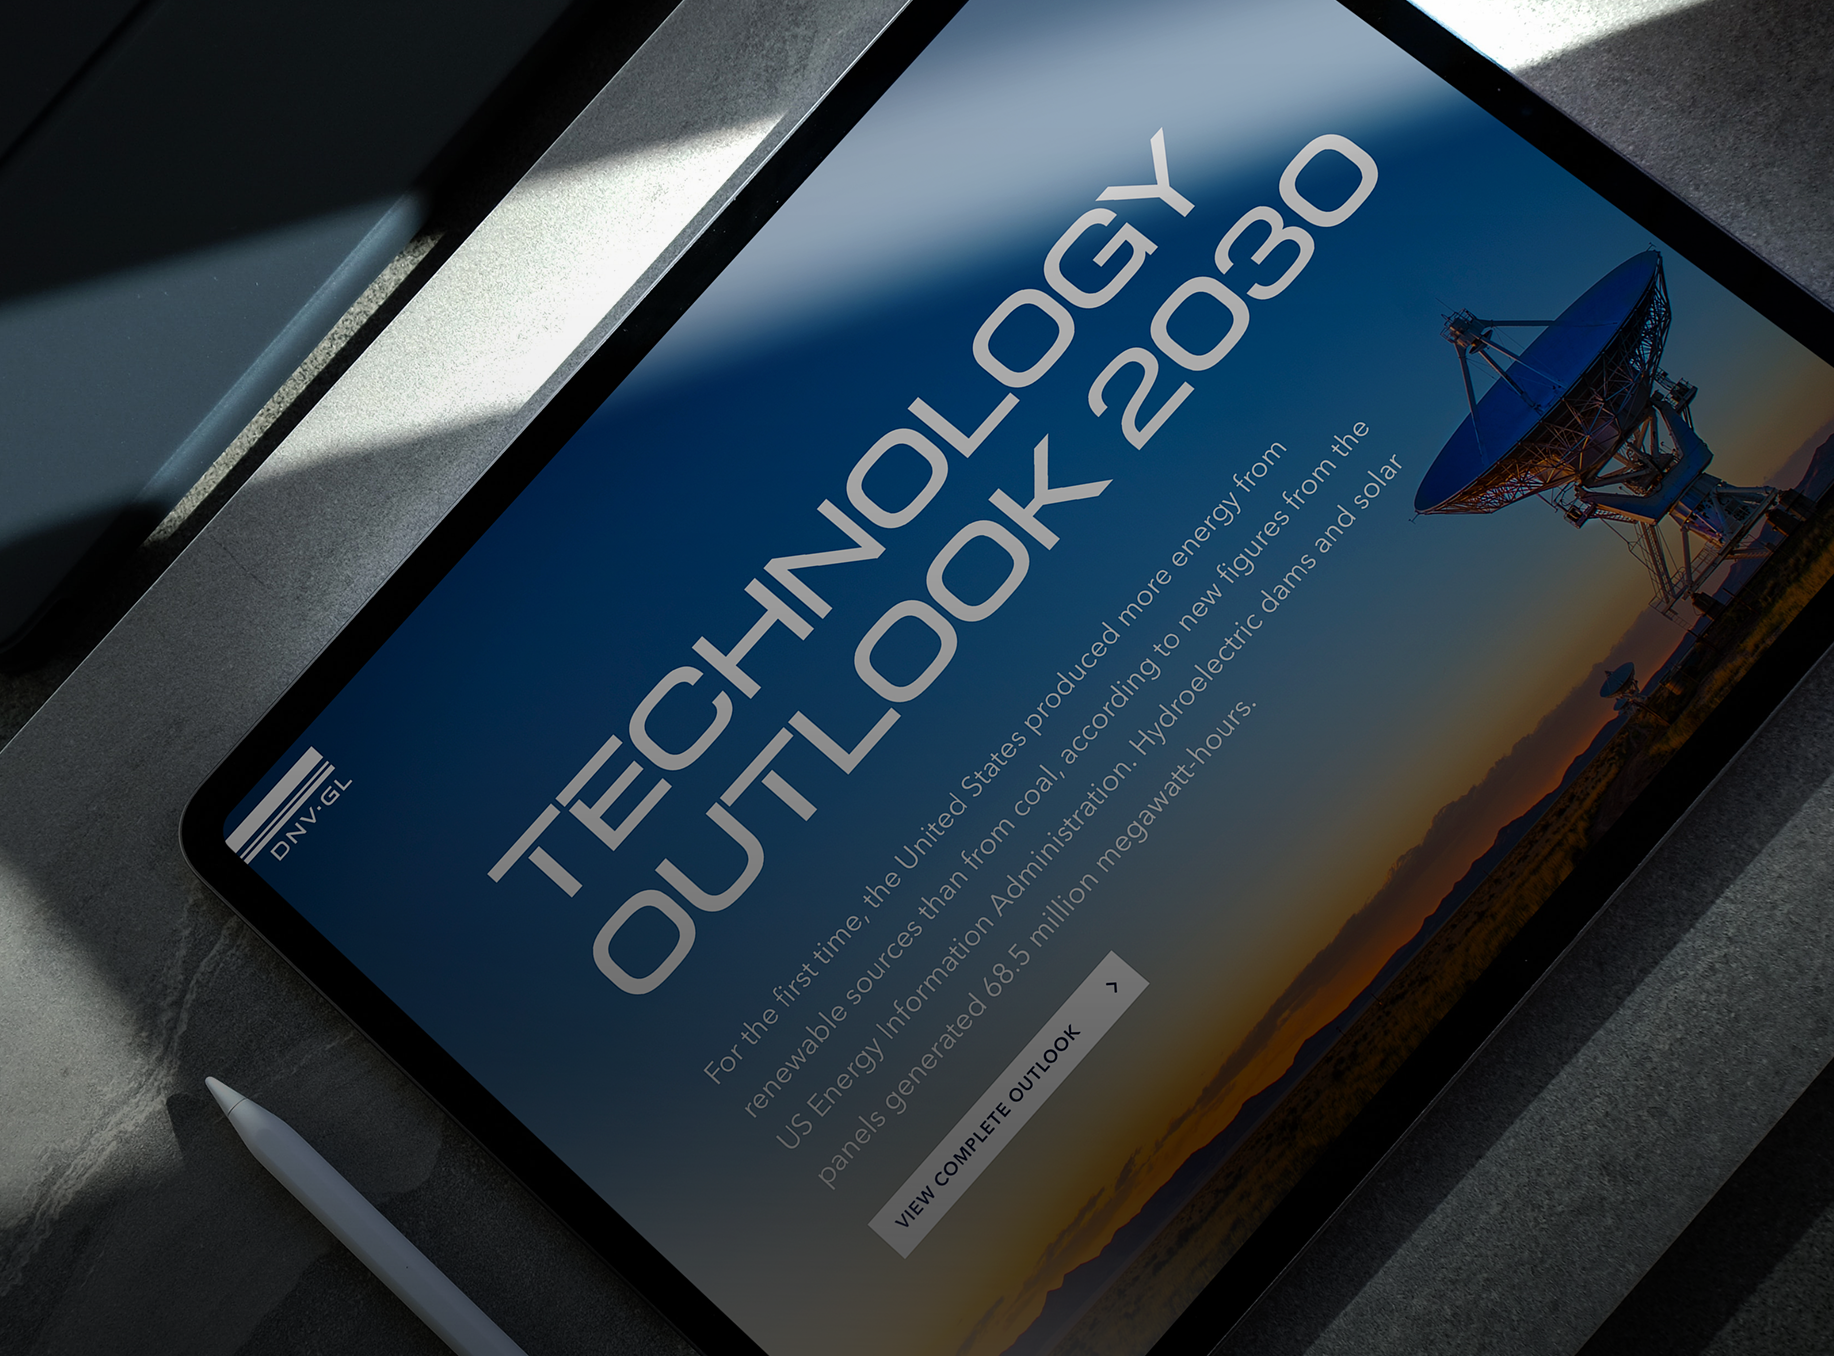 Technology Outlook 2030